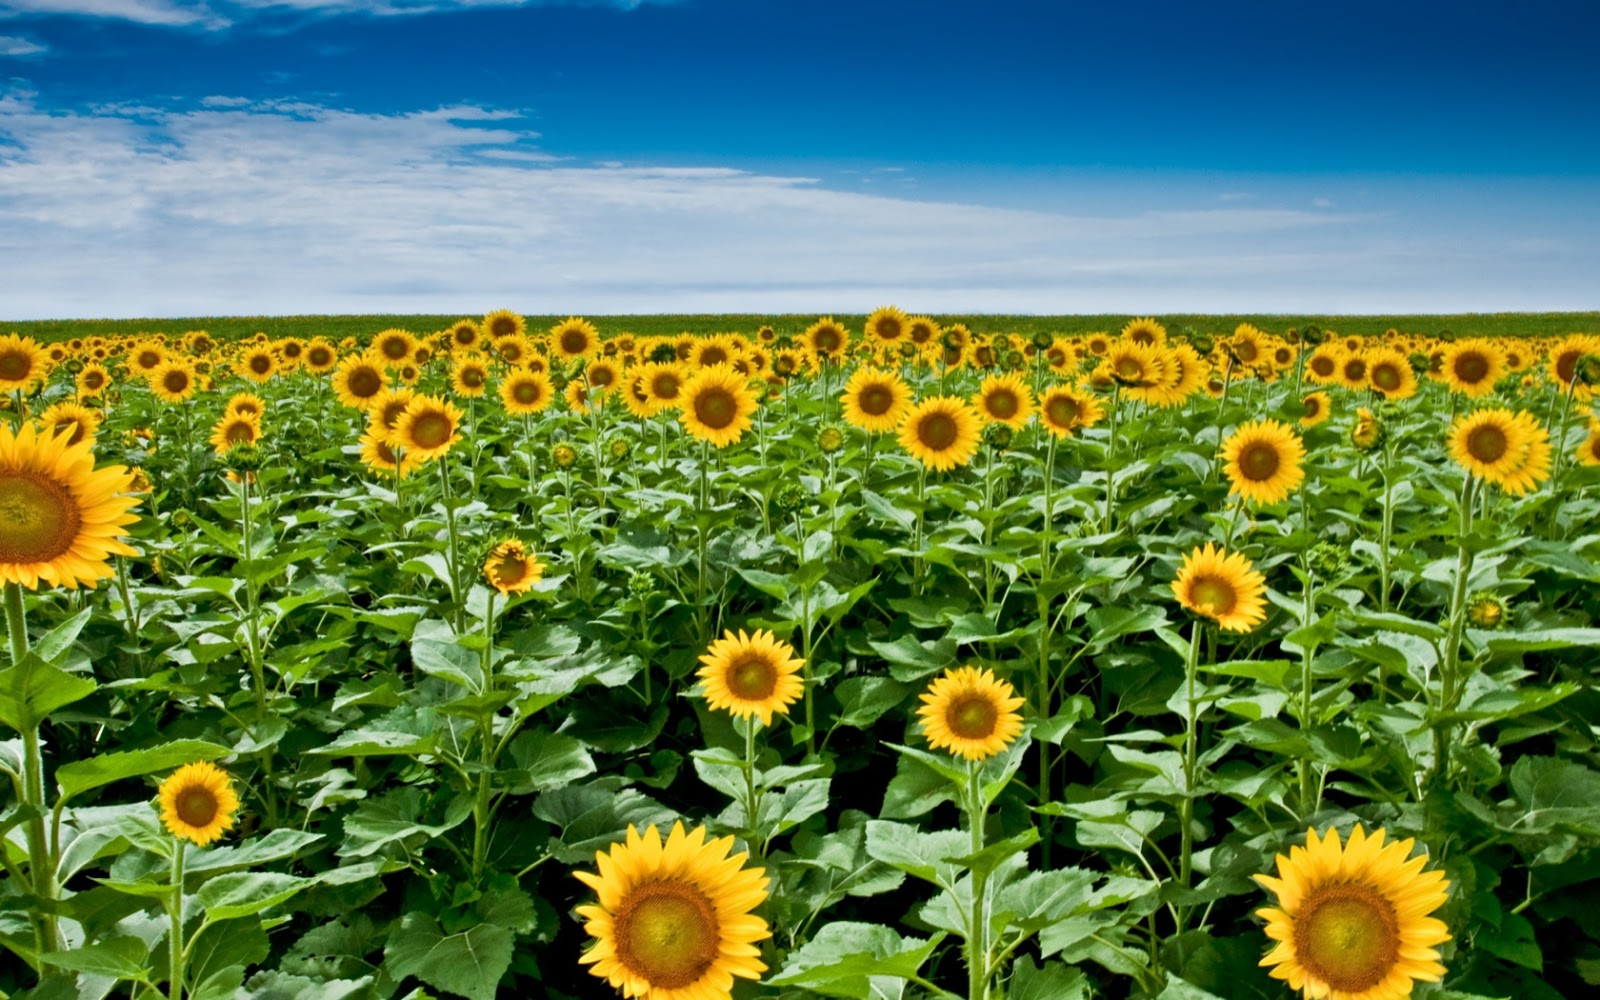 Field Of Sunflowers Wallpaper: Sunflower Wallpaper Desktop